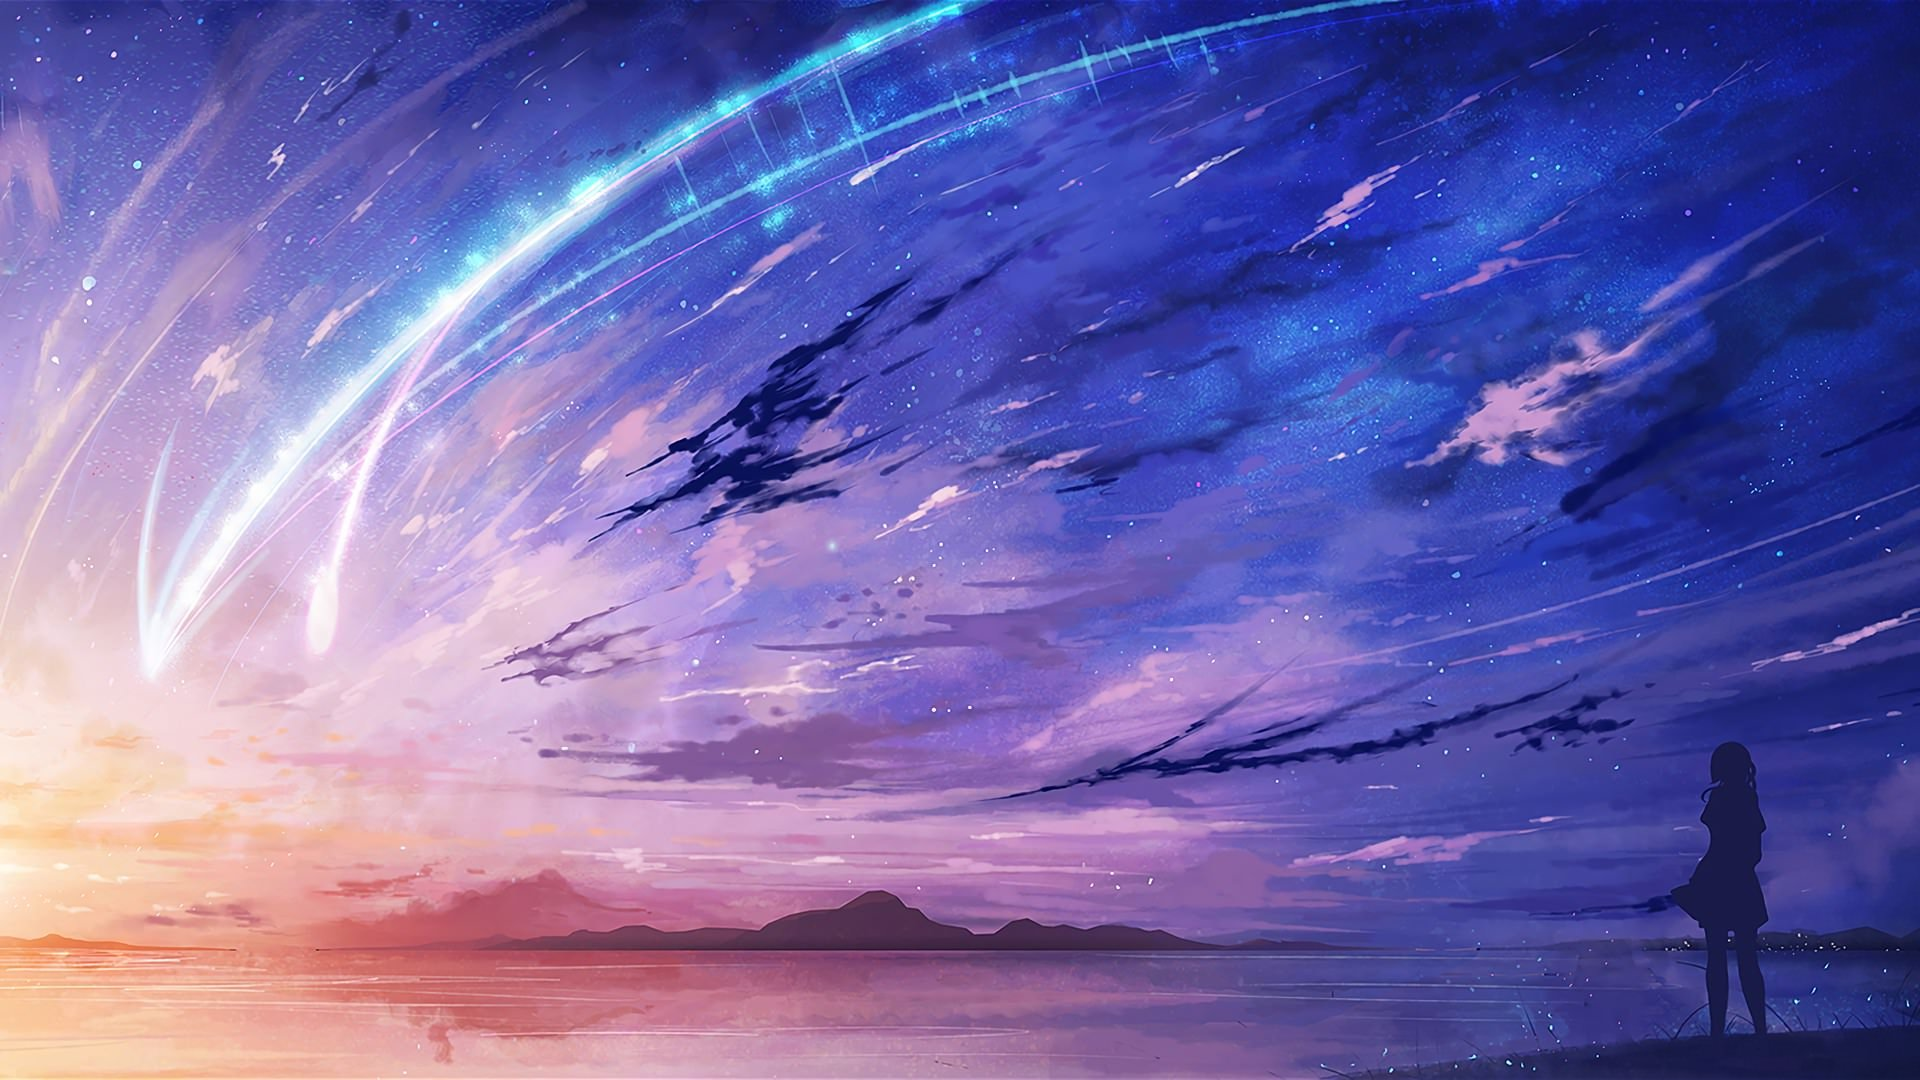 Your Name Anime Landscape Wallpapers Top Free Your Name Anime